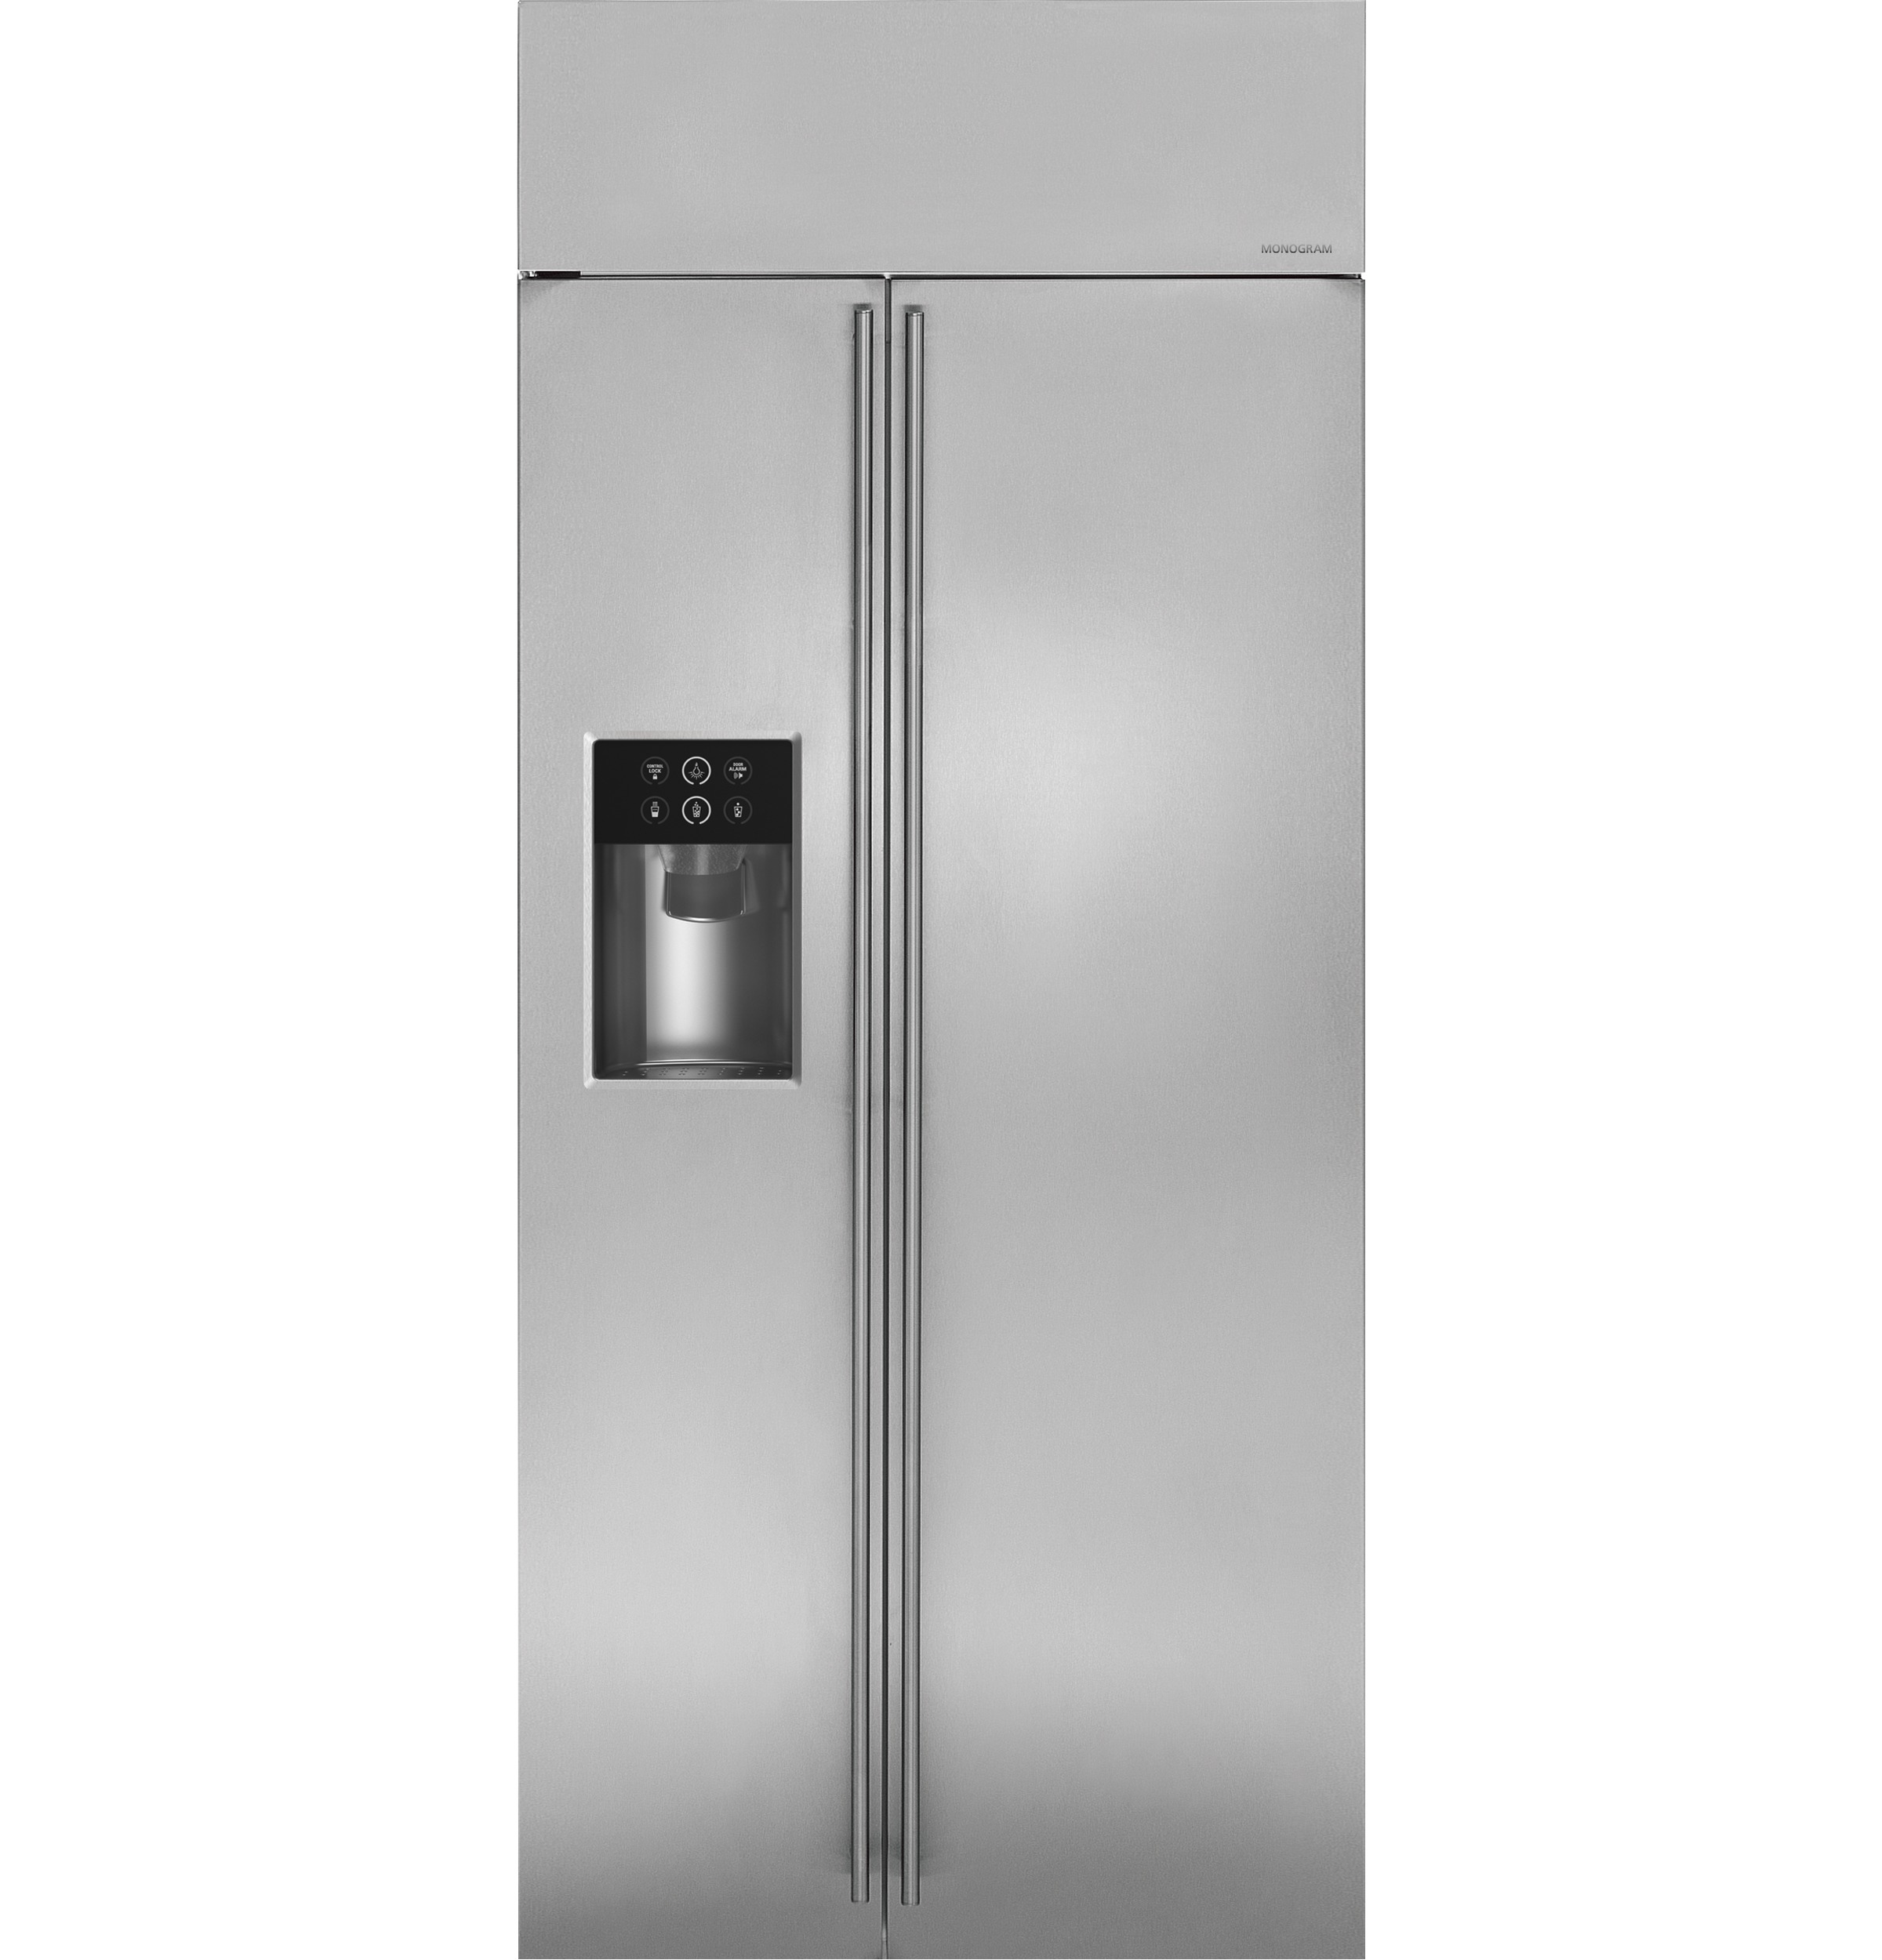 "Monogram Monogram 36"" Smart Built-In Side-by-Side Refrigerator with Dispenser"